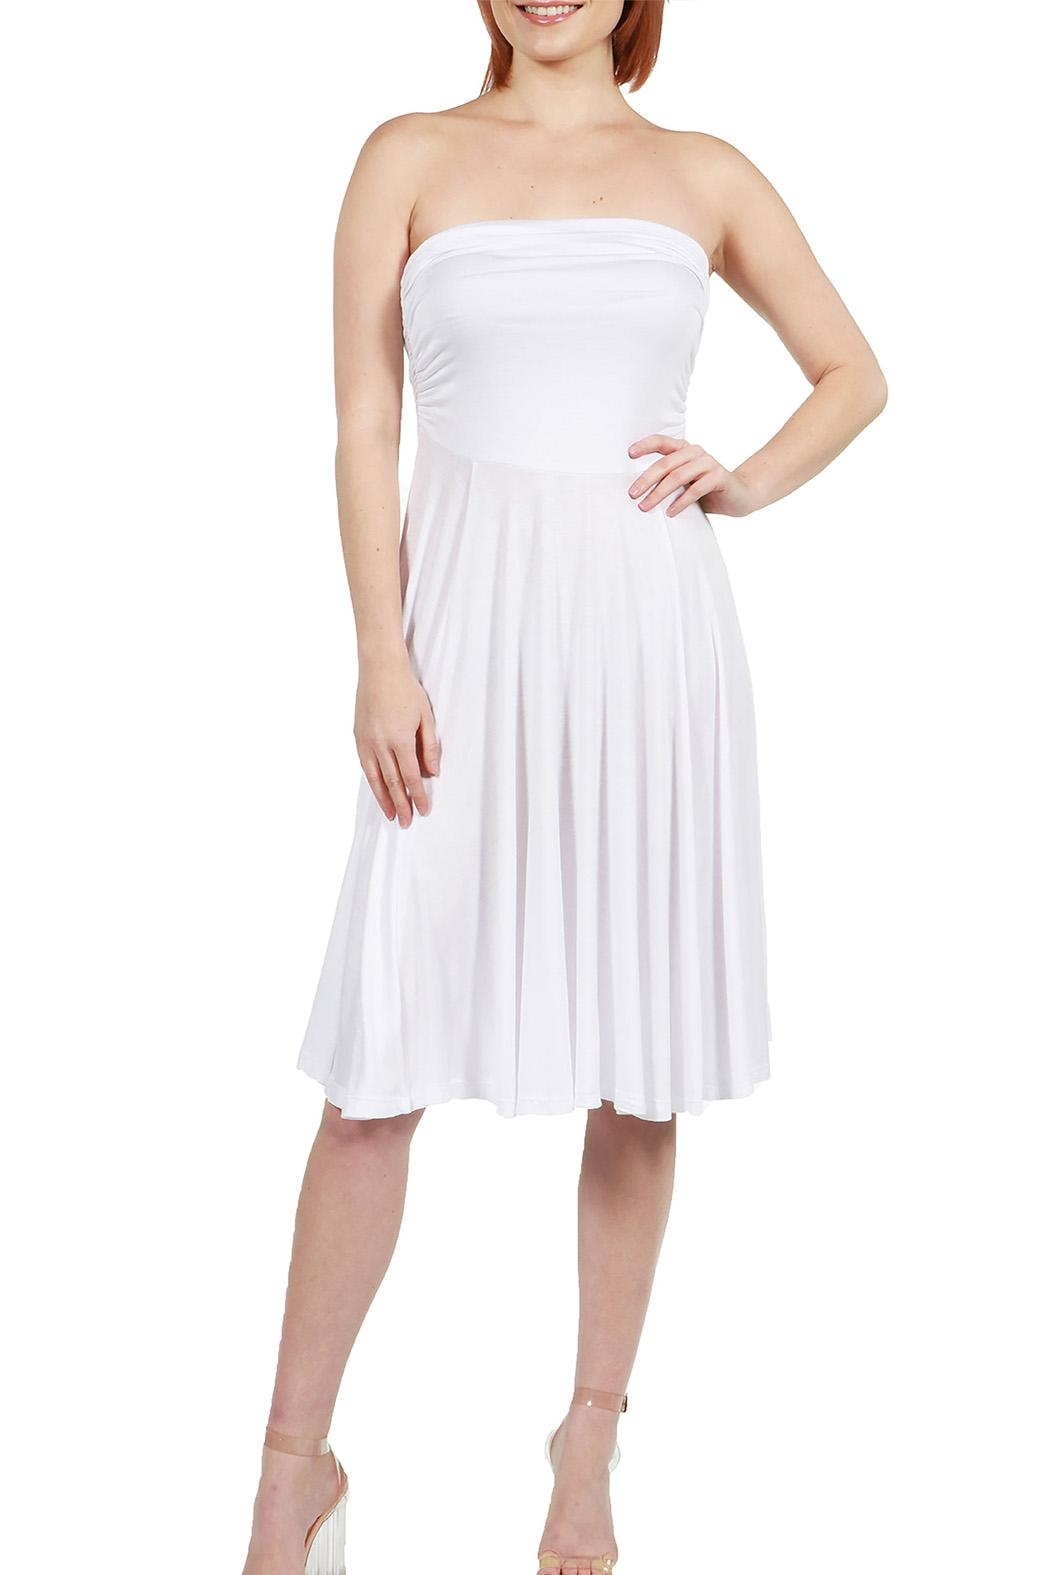 24/7 Comfort Apparel Irresistible Strapless Dress - Main Image